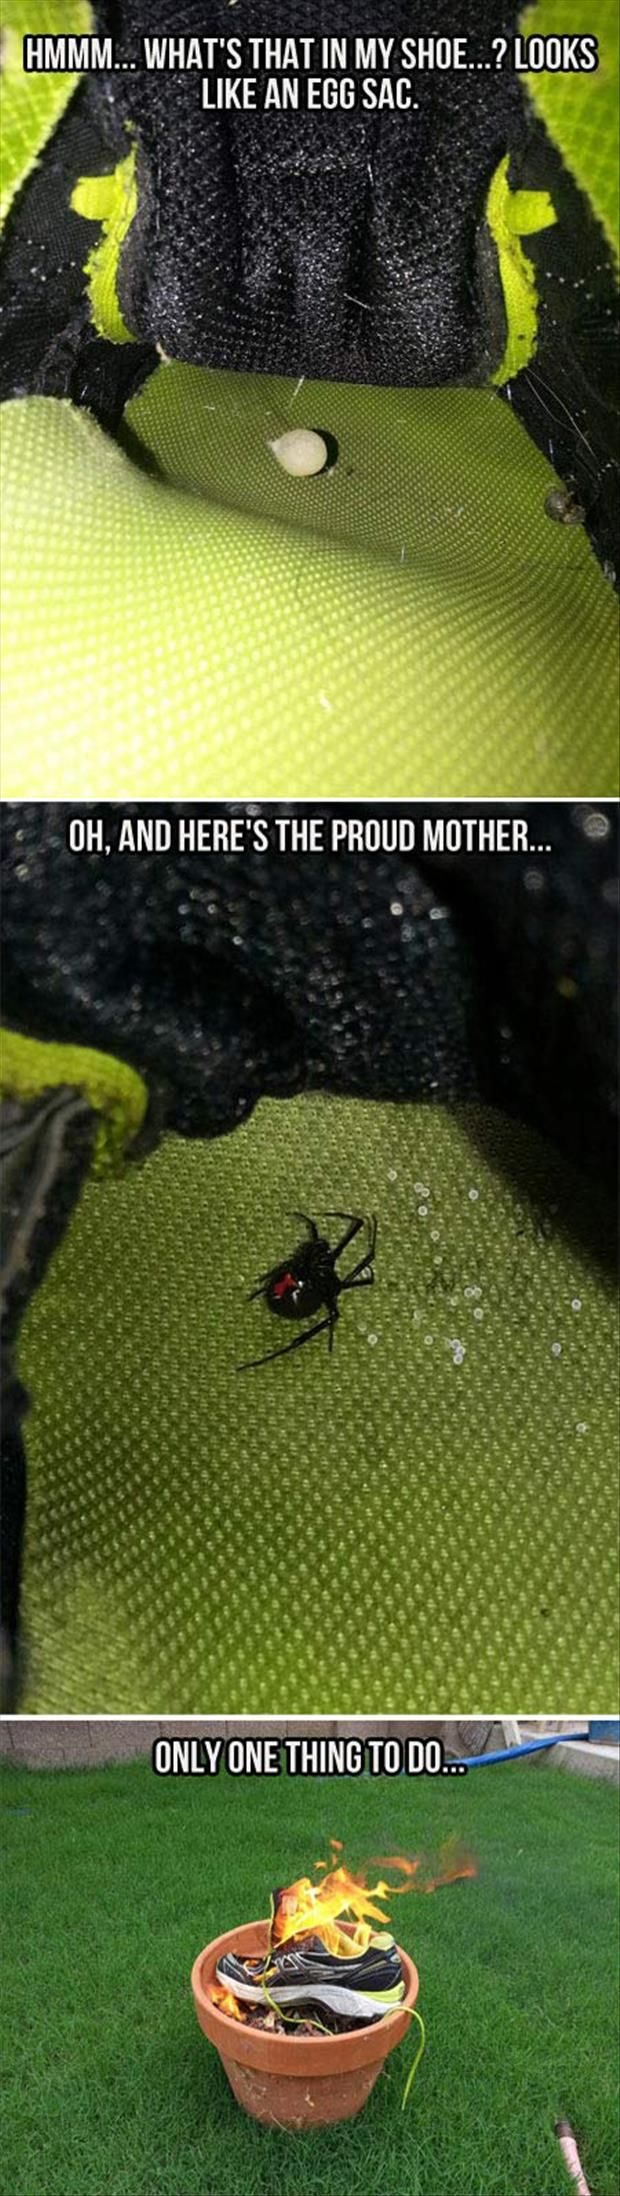 Even though I have always been scared of spiders, Pinterest has definitely made it worse